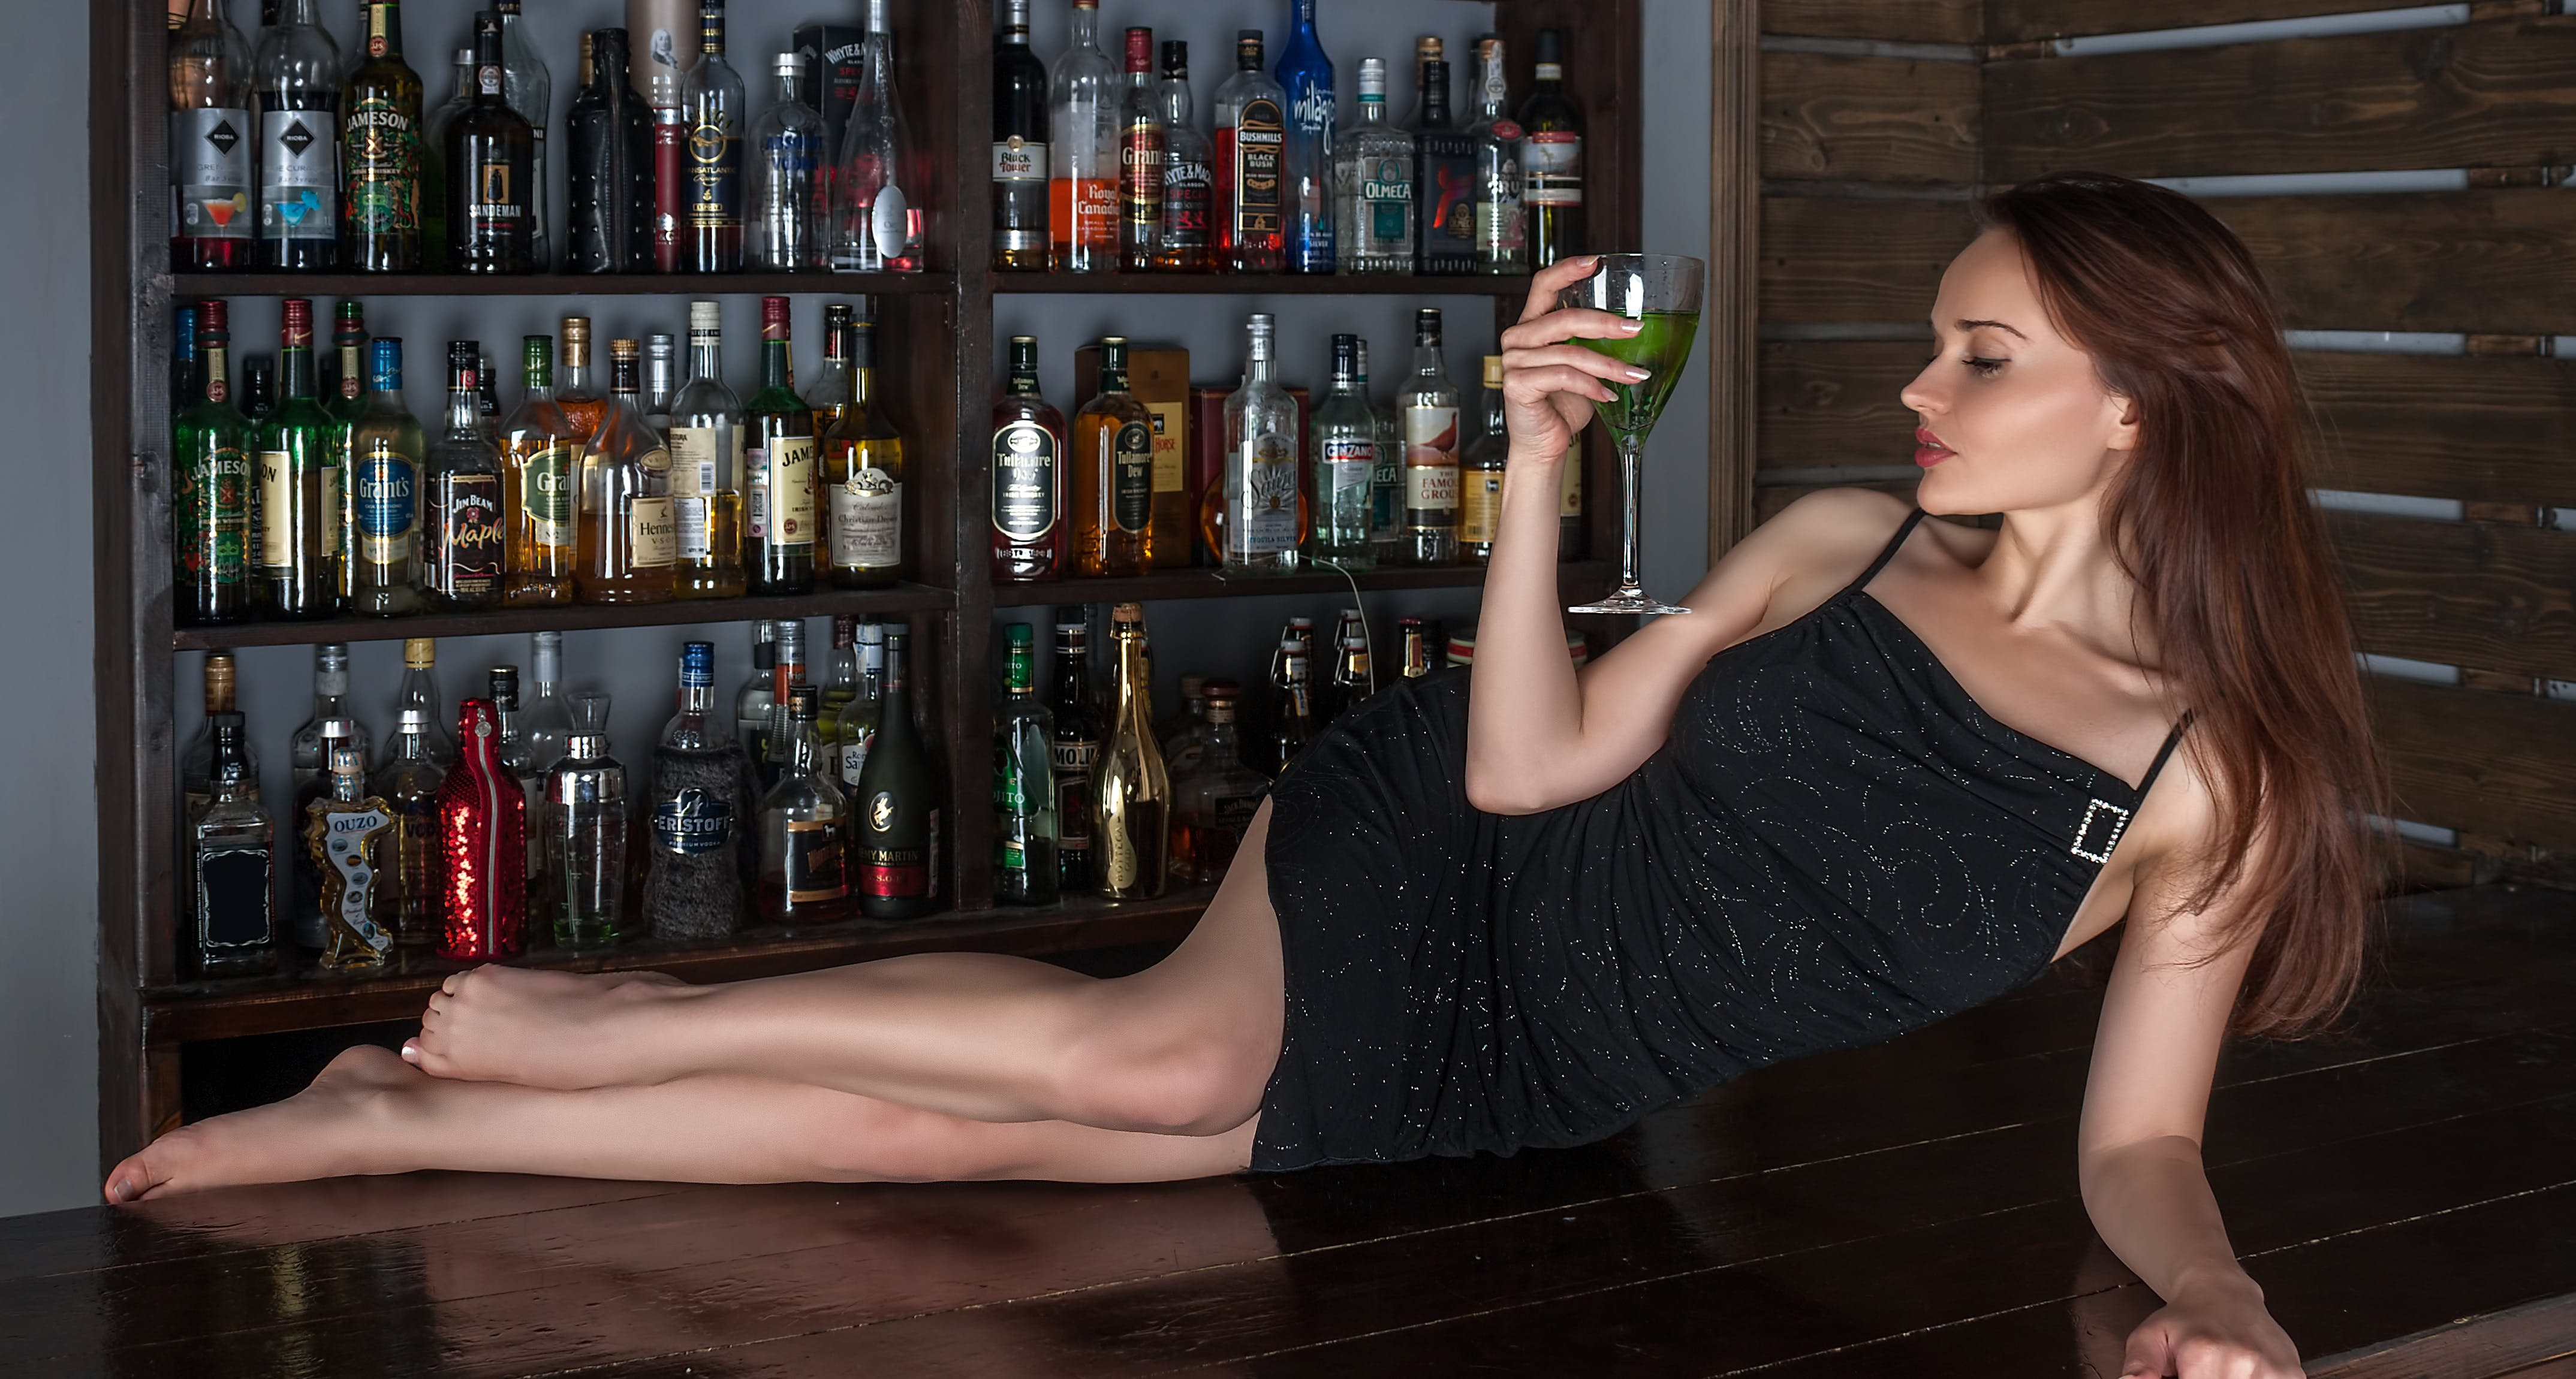 Free stock photo of fashion, people, woman, alcohol